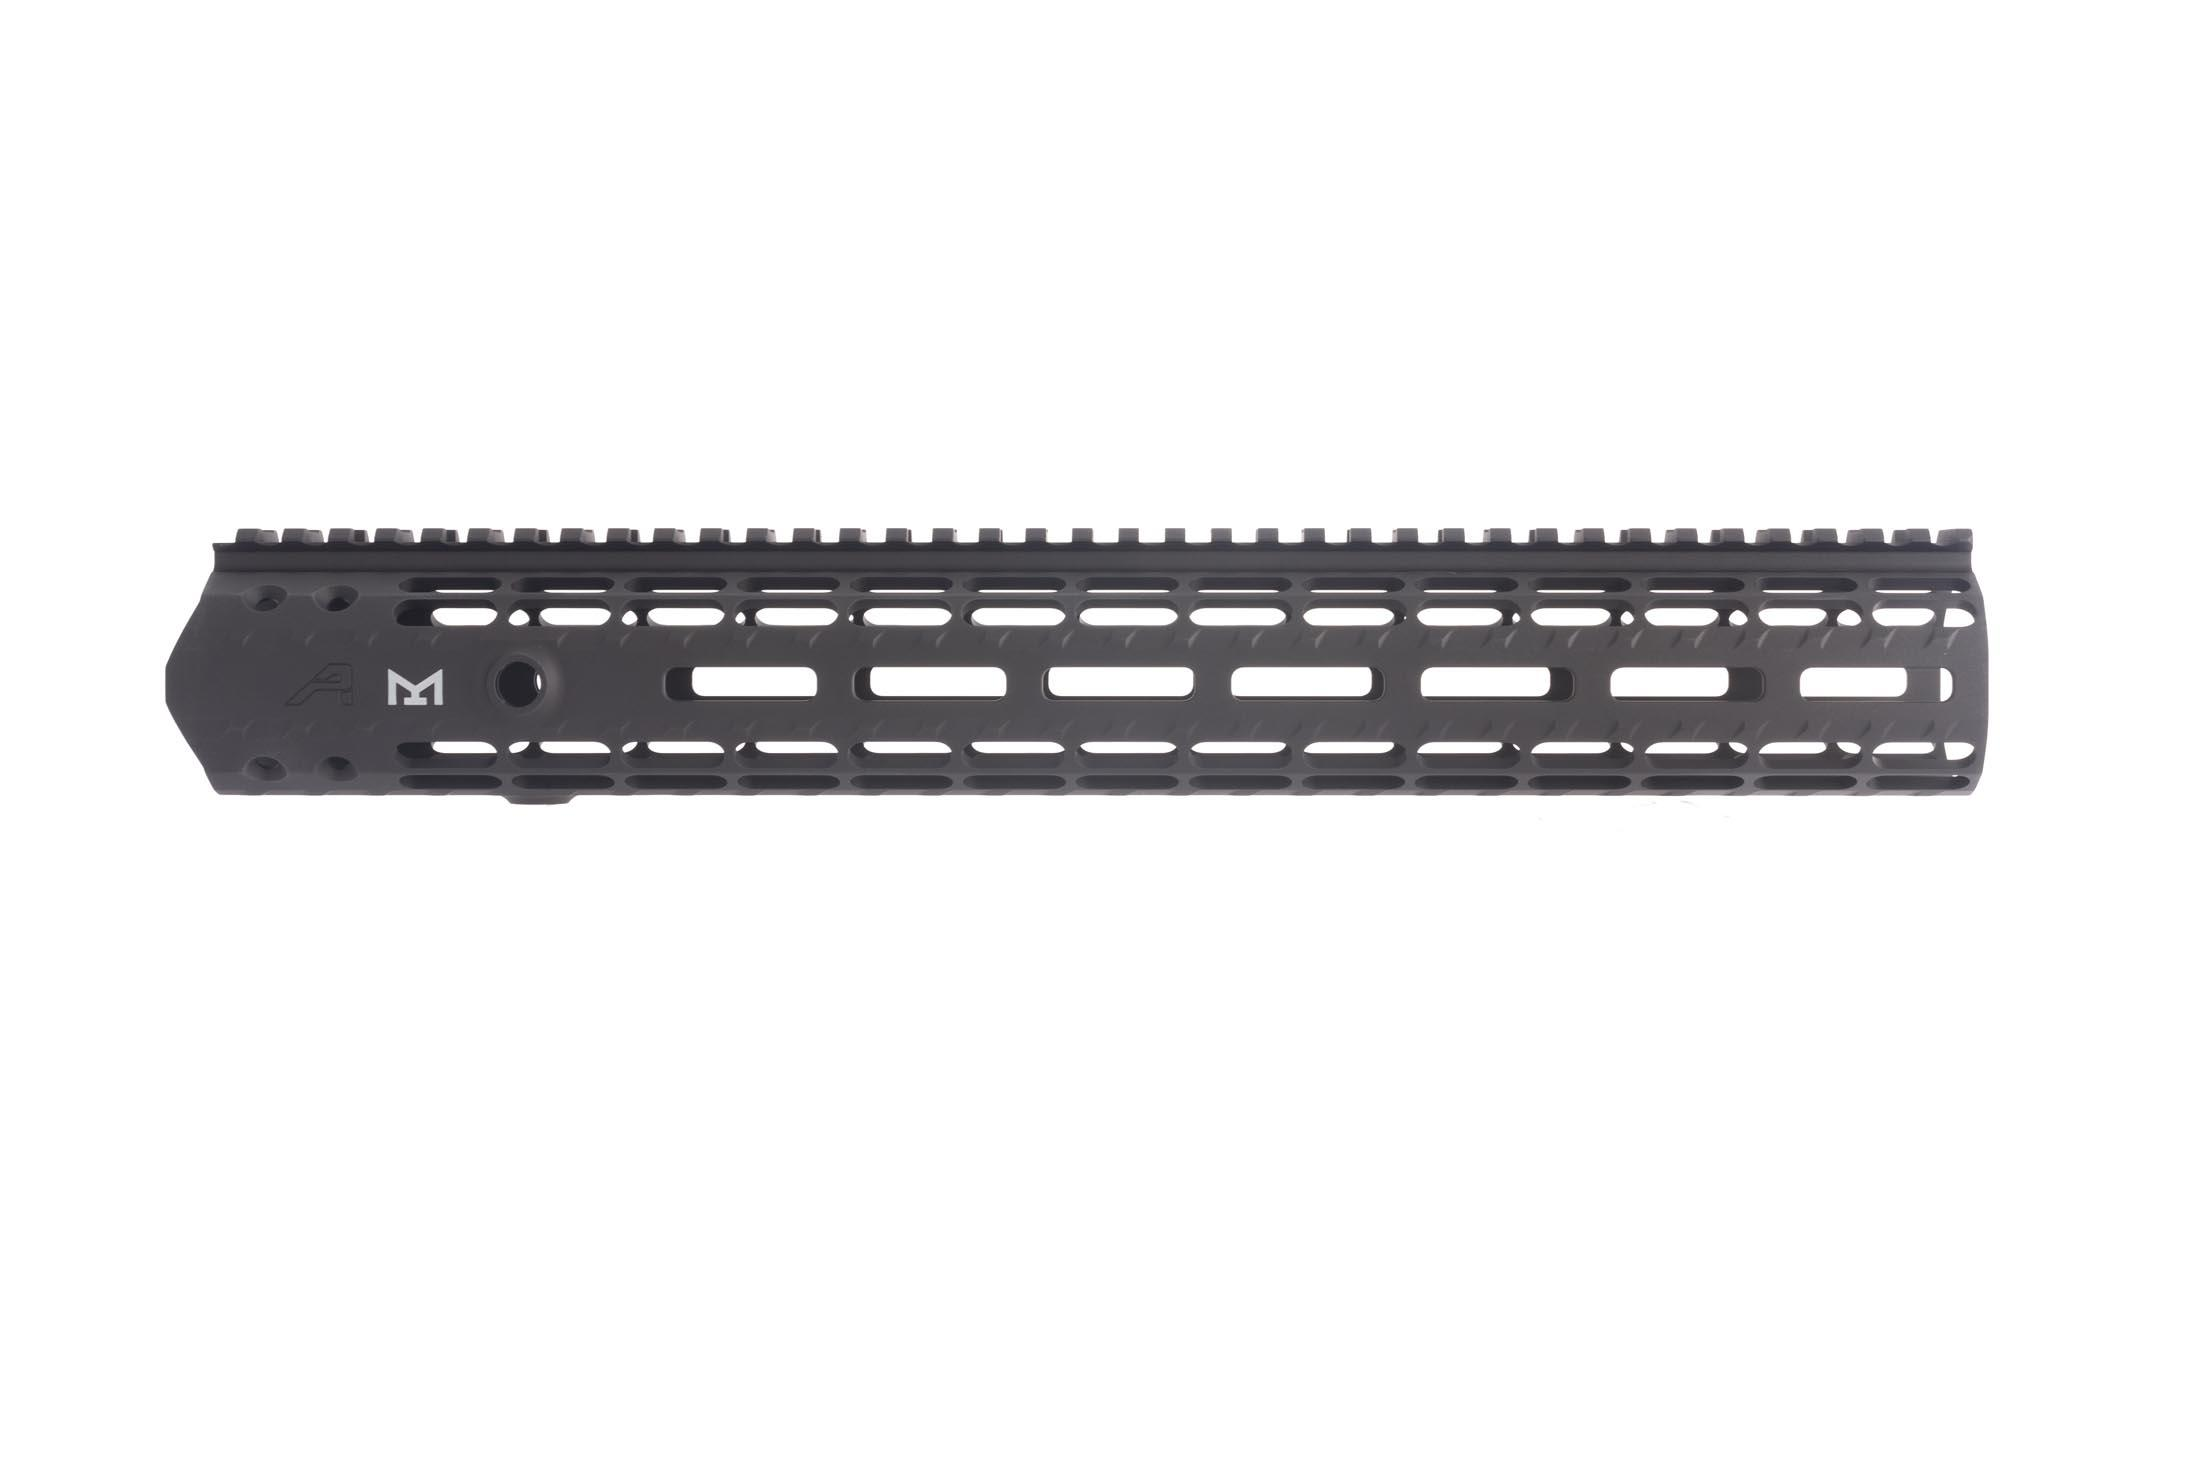 The Aero Precision M5 Enhanced free float handguard is made out of 6061-T6 aluminum